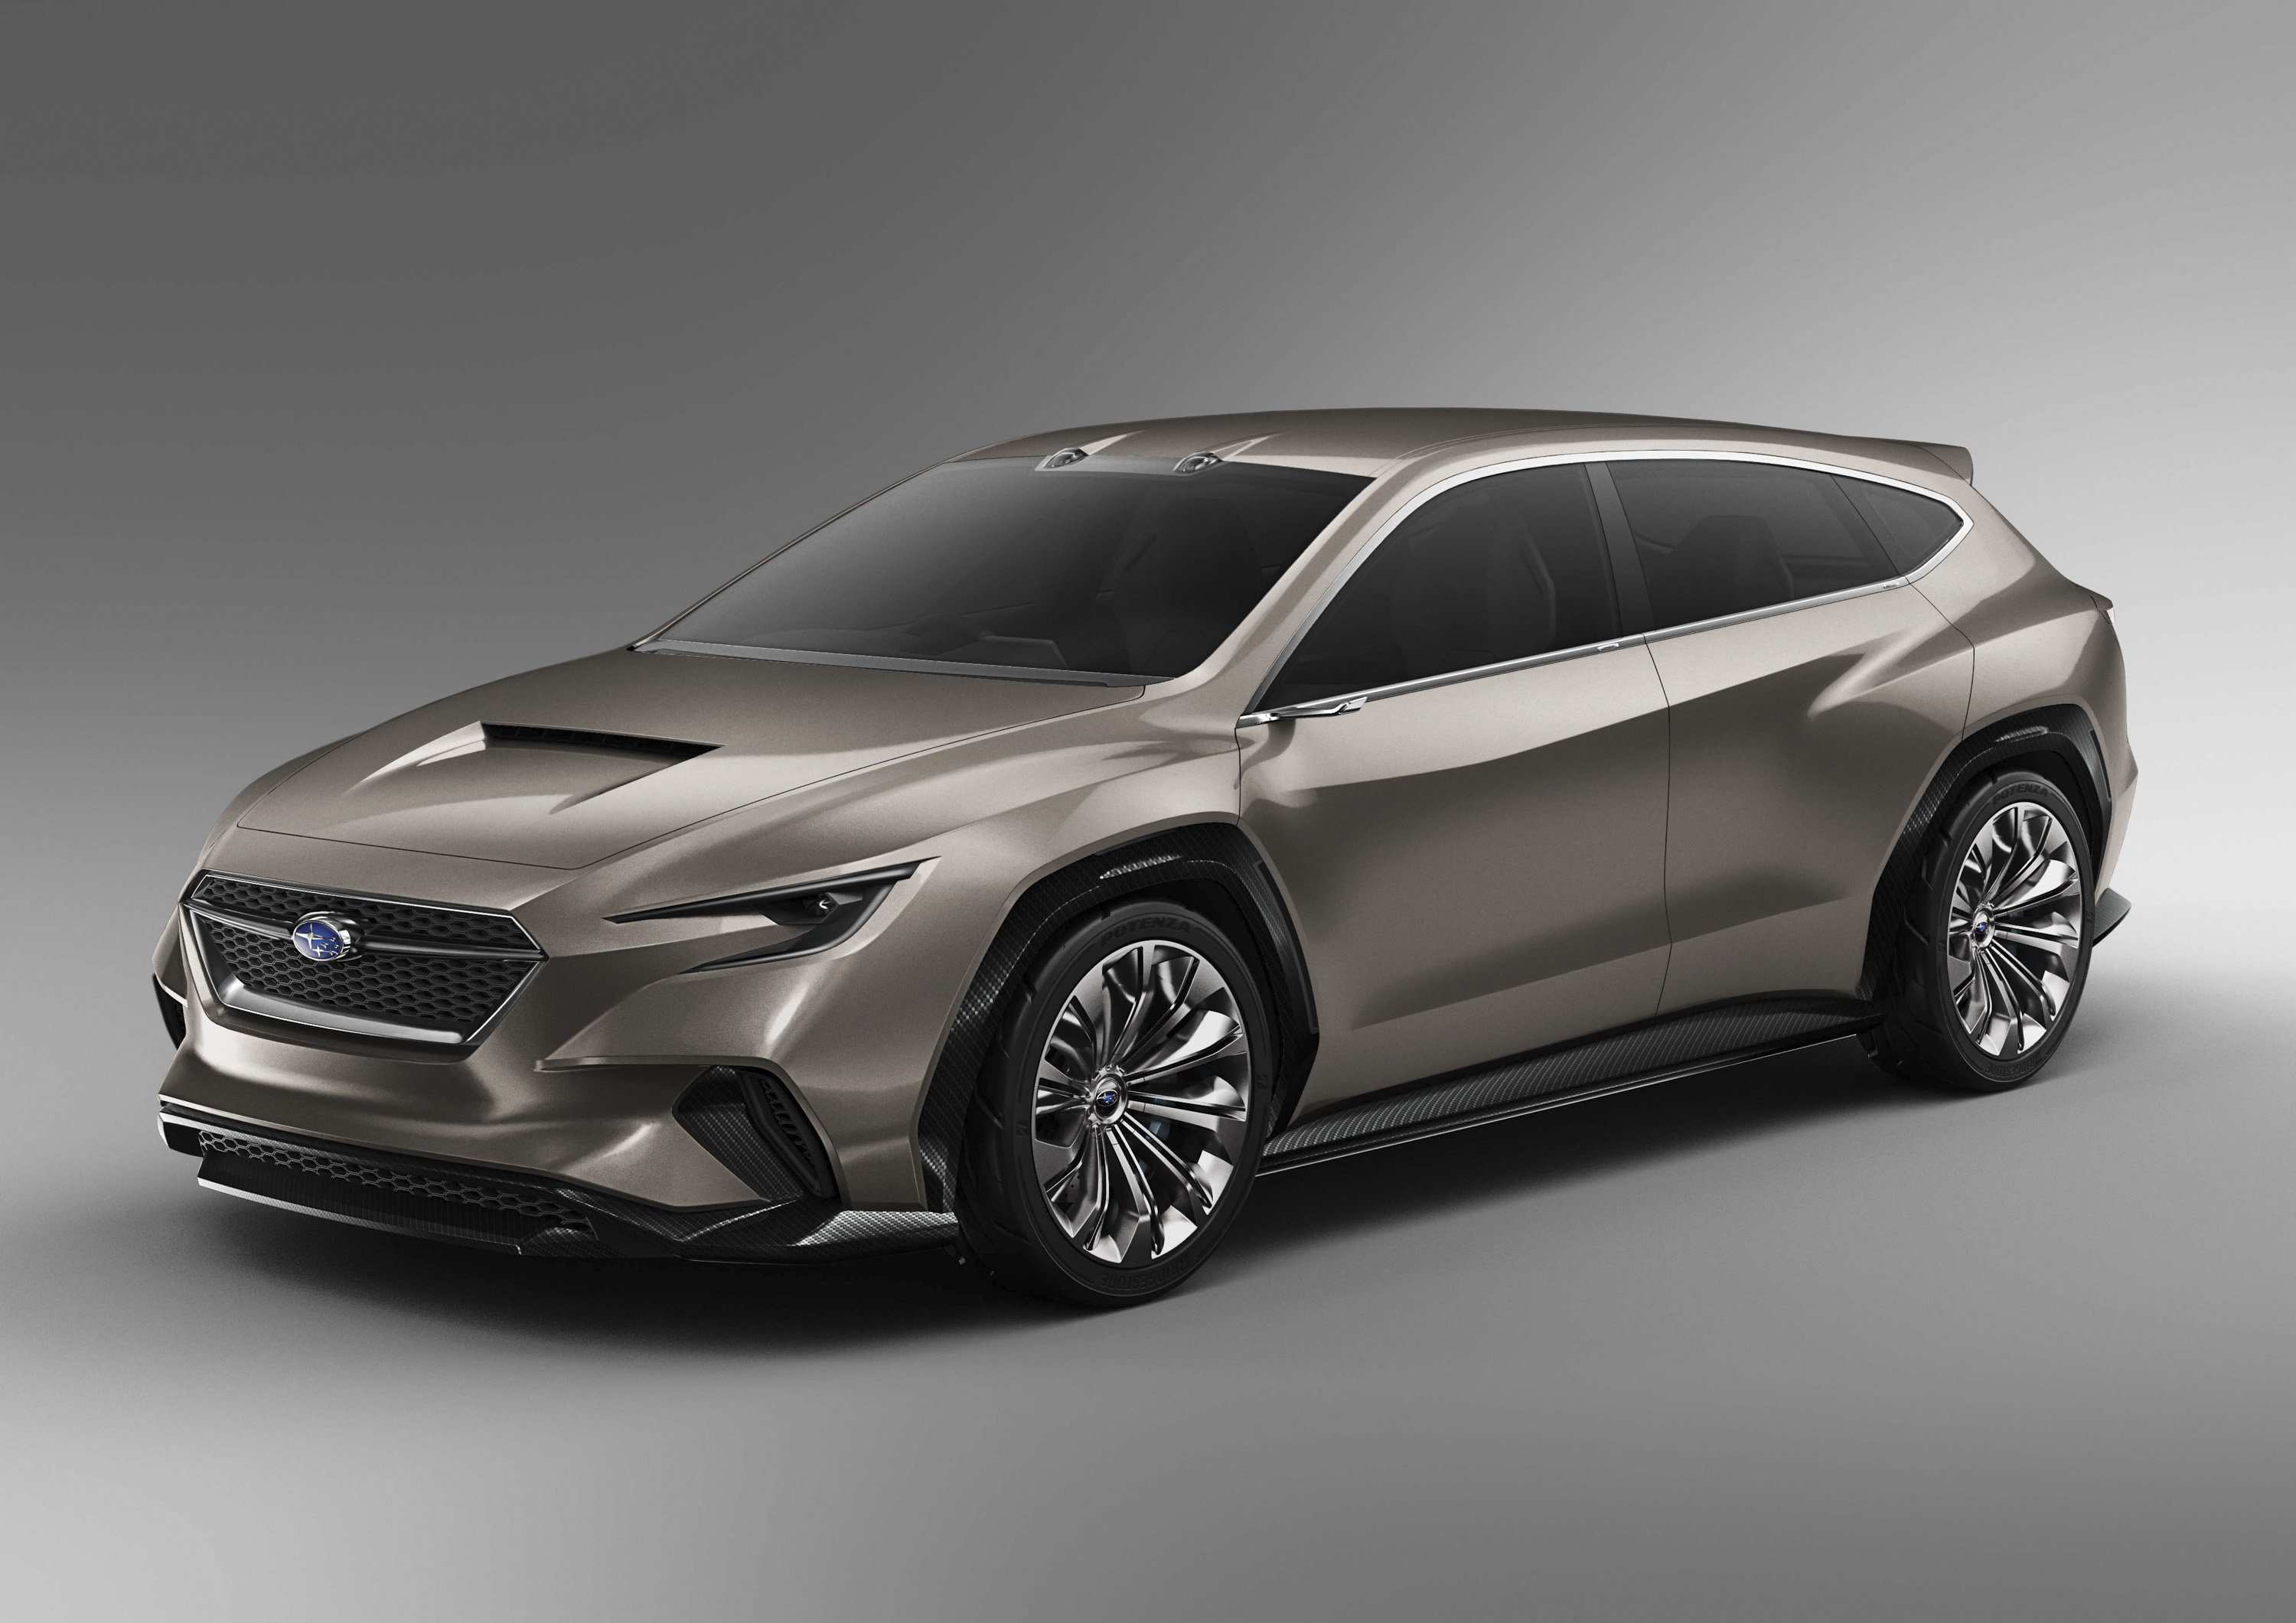 62 A Next Generation Subaru Outback 2020 Images